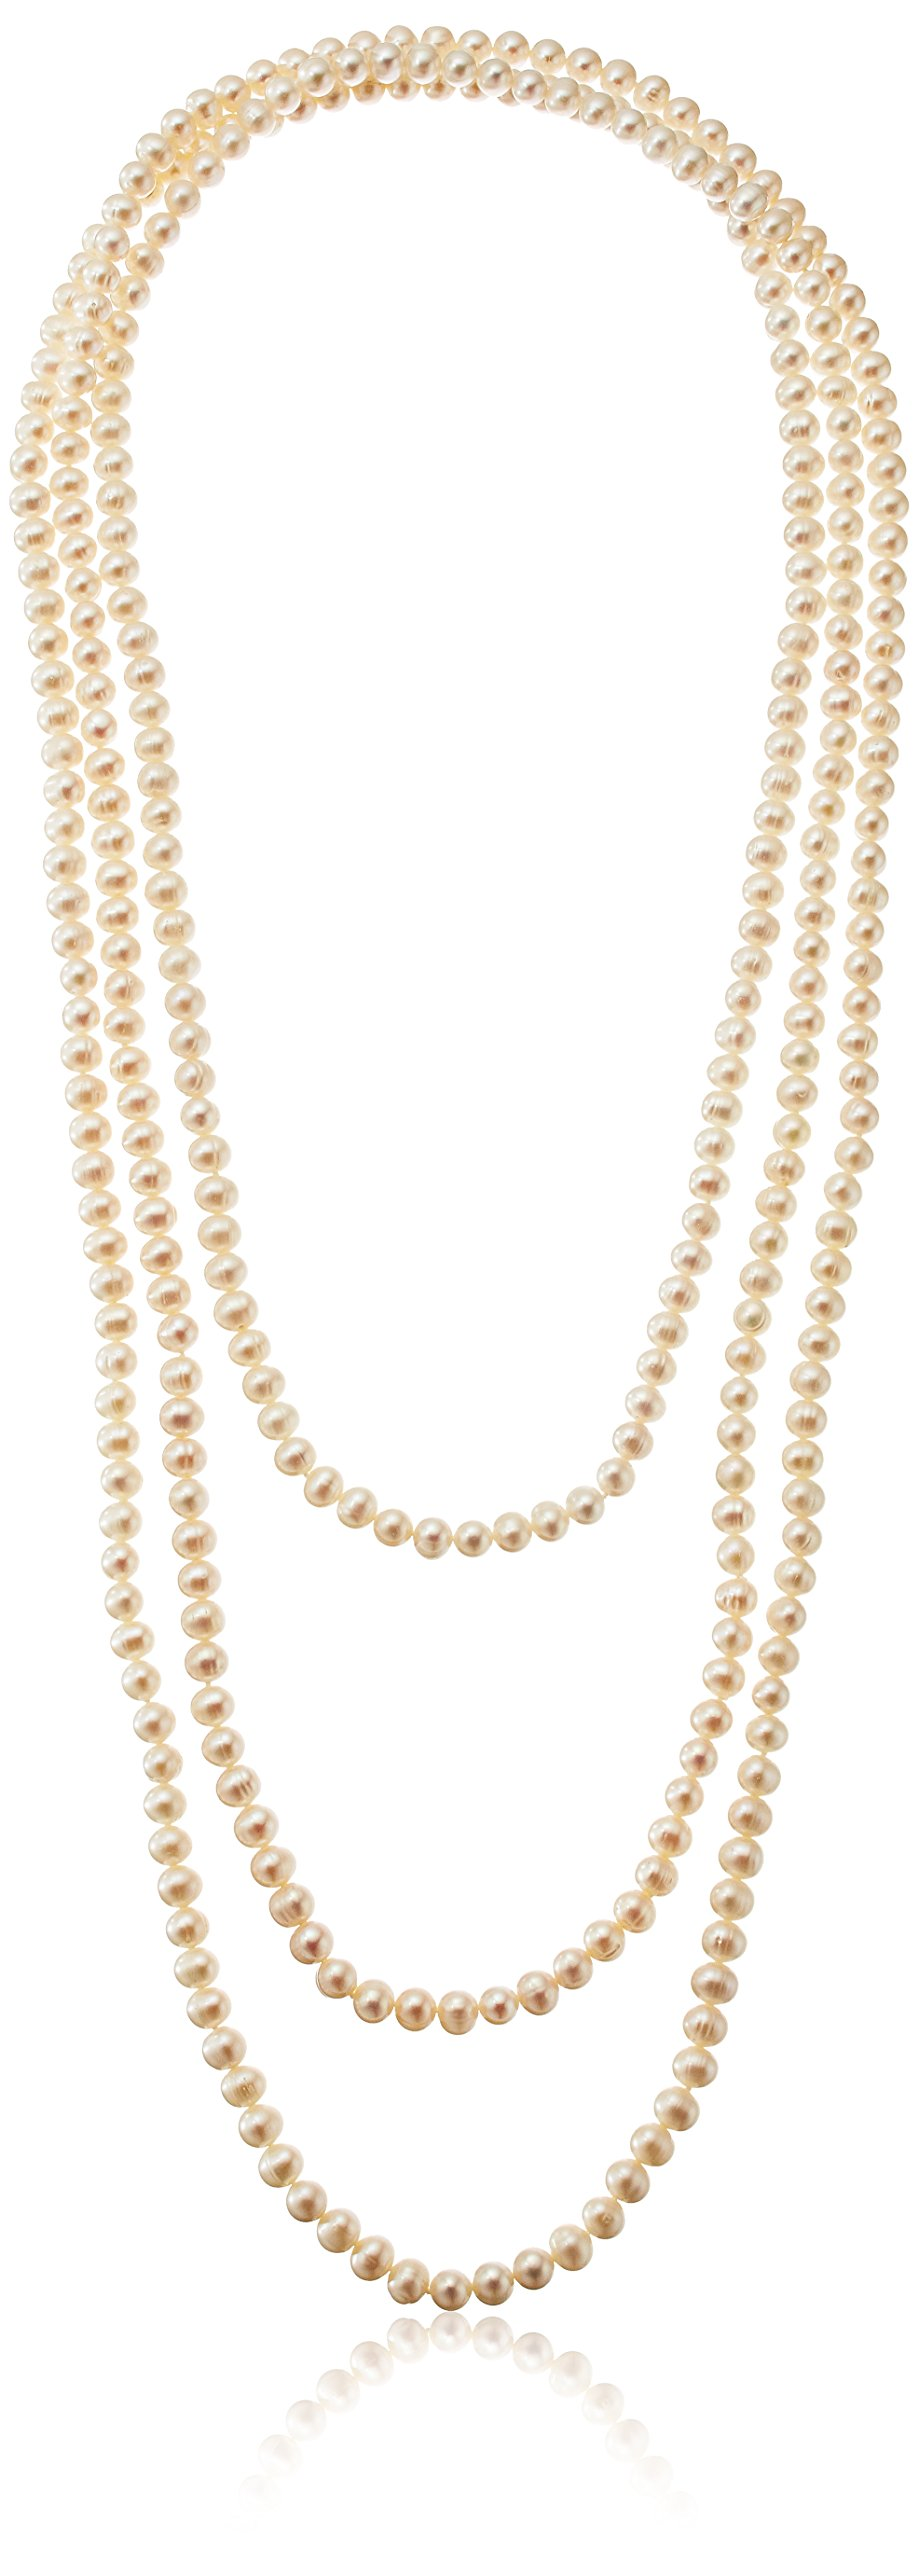 Freshwater Cultured 7-7.5mm Pearl Endless Strand Necklace, 100''